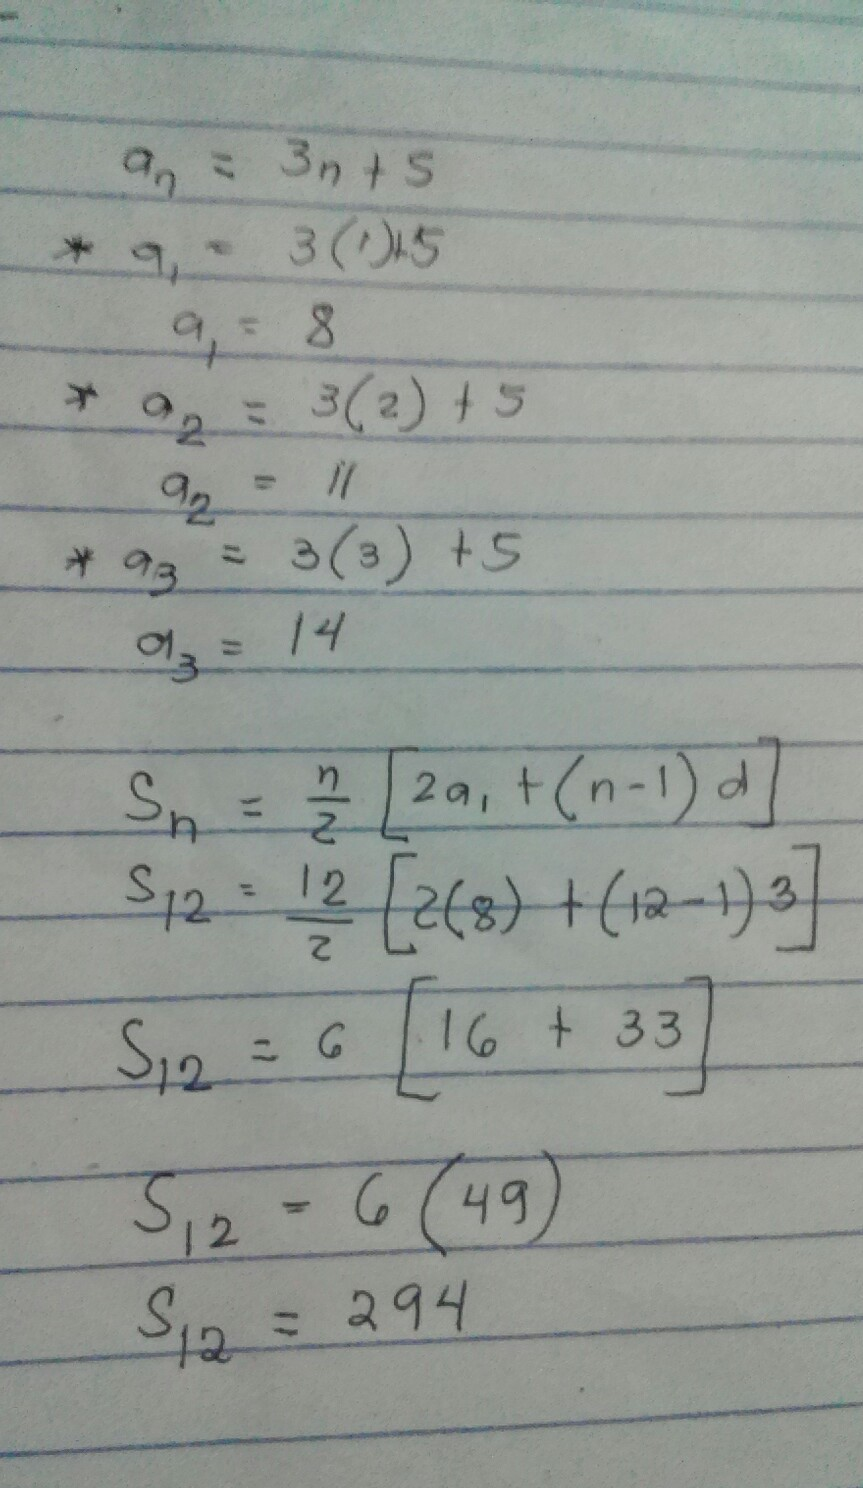 find the sum of the first 12 terms of the arithmetic